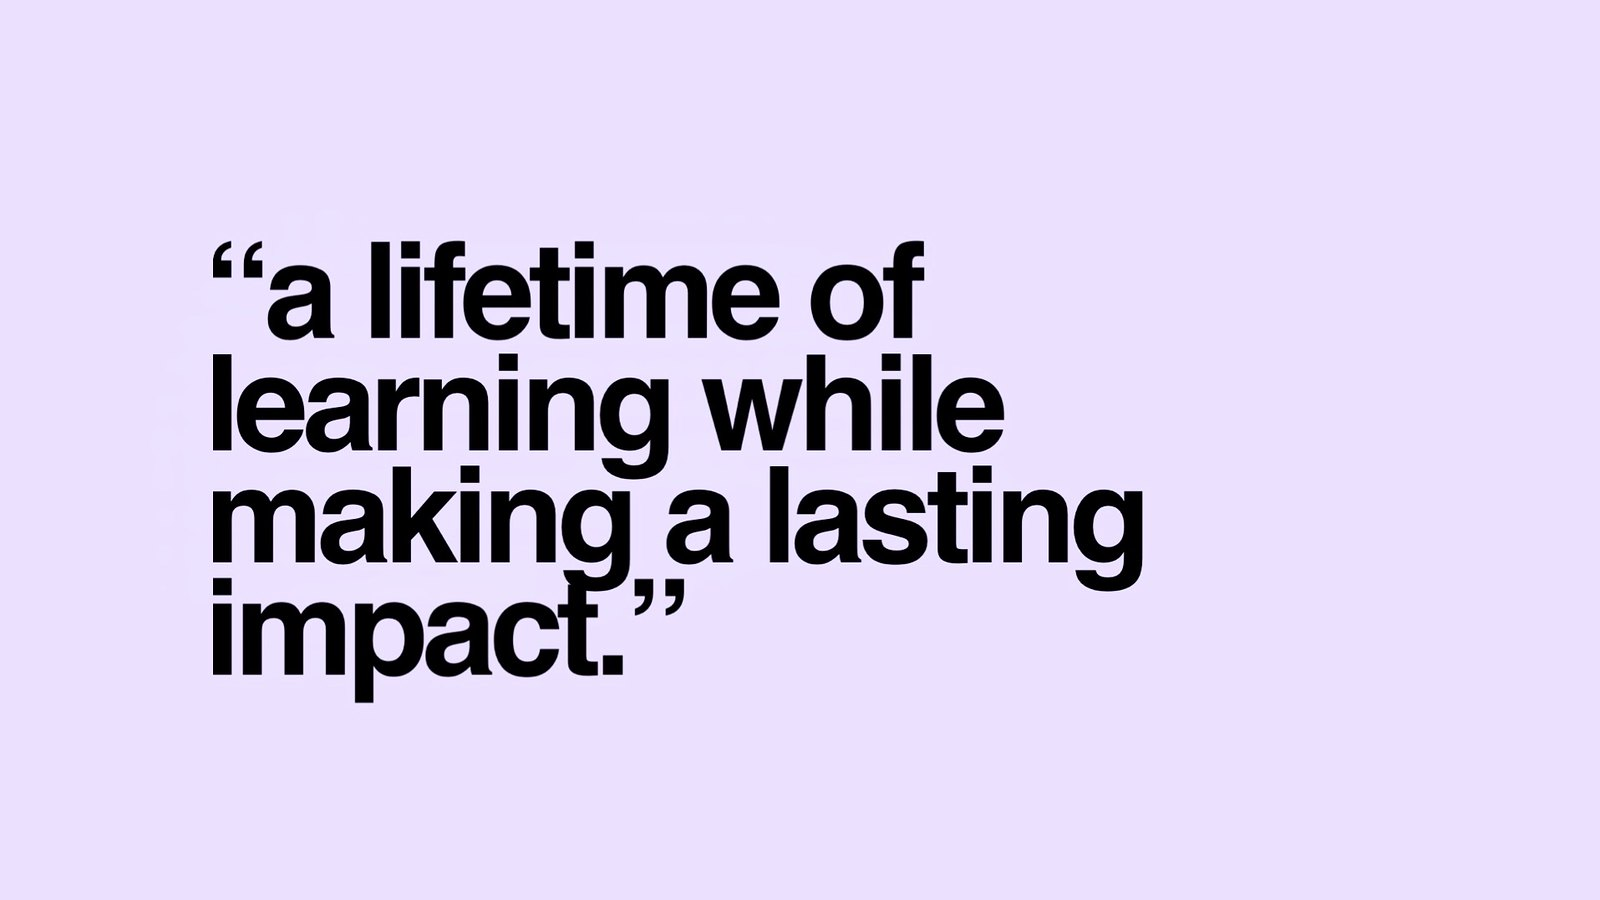 A lifetime of learning while making a lasting impact.